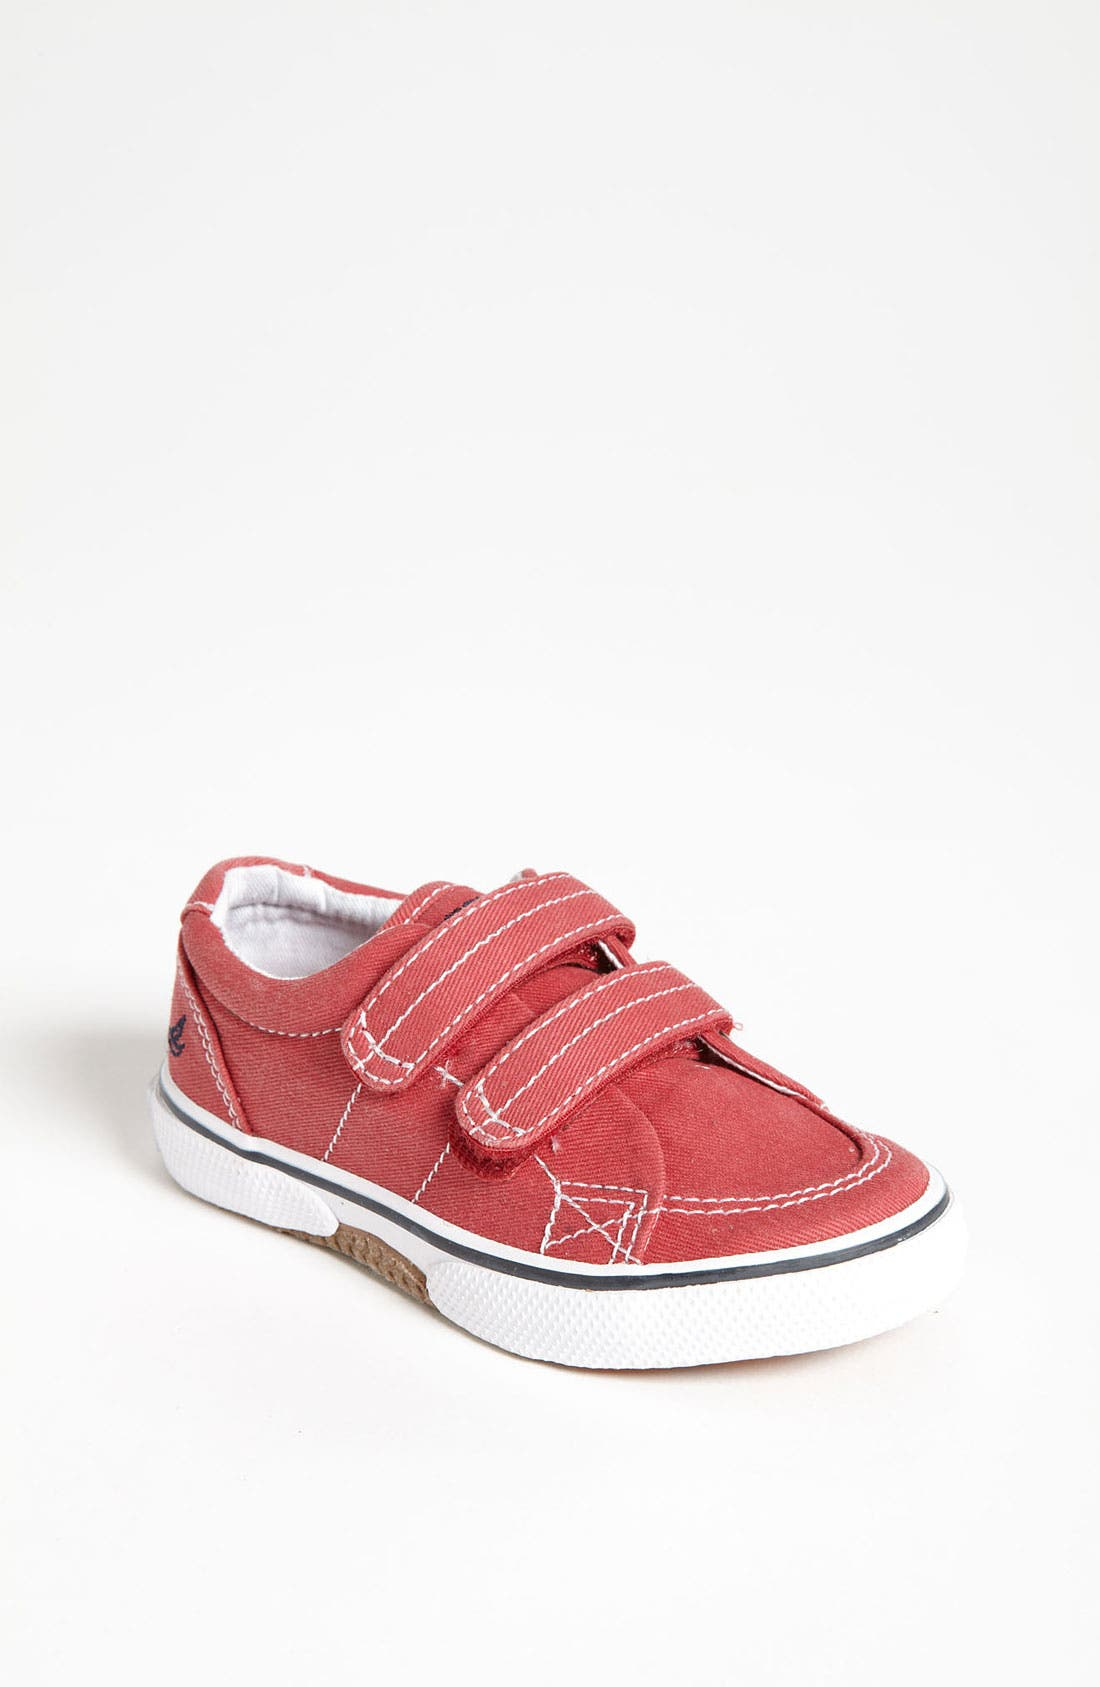 Sperry Top-Sider<sup>®</sup> Kids 'Halyard' Sneaker,                             Main thumbnail 5, color,